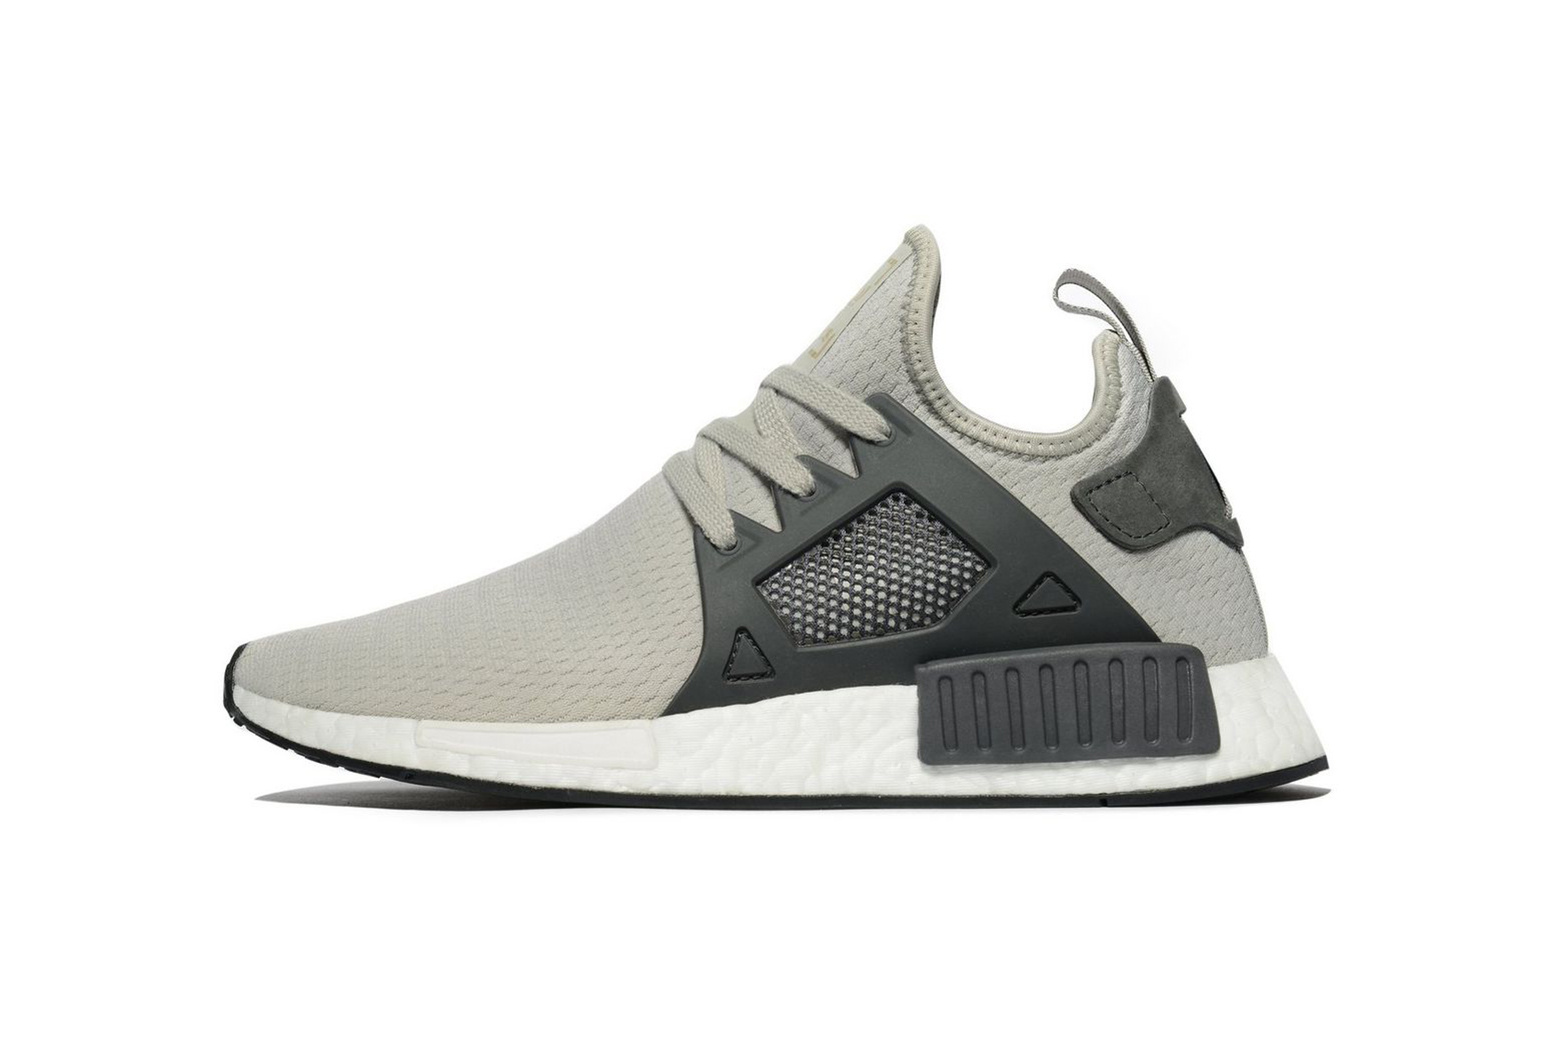 adidas-nmd-xr1-jd-sports-exclusive-1